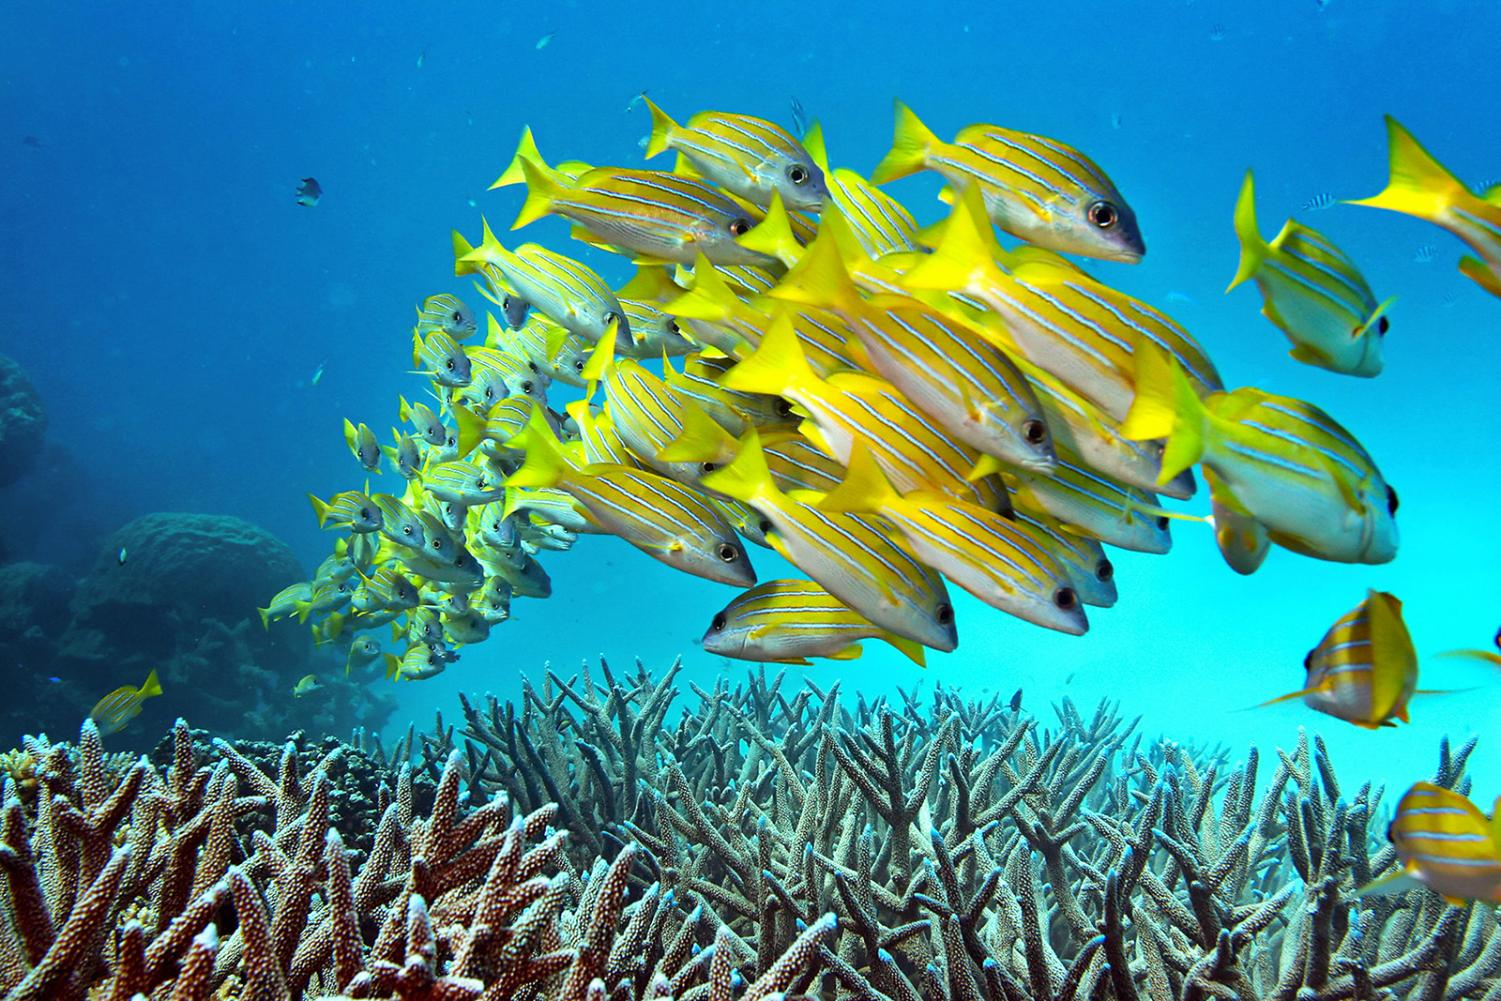 A school of fish hovers over staghorn coral on the Great Barrier Reef in Australia.